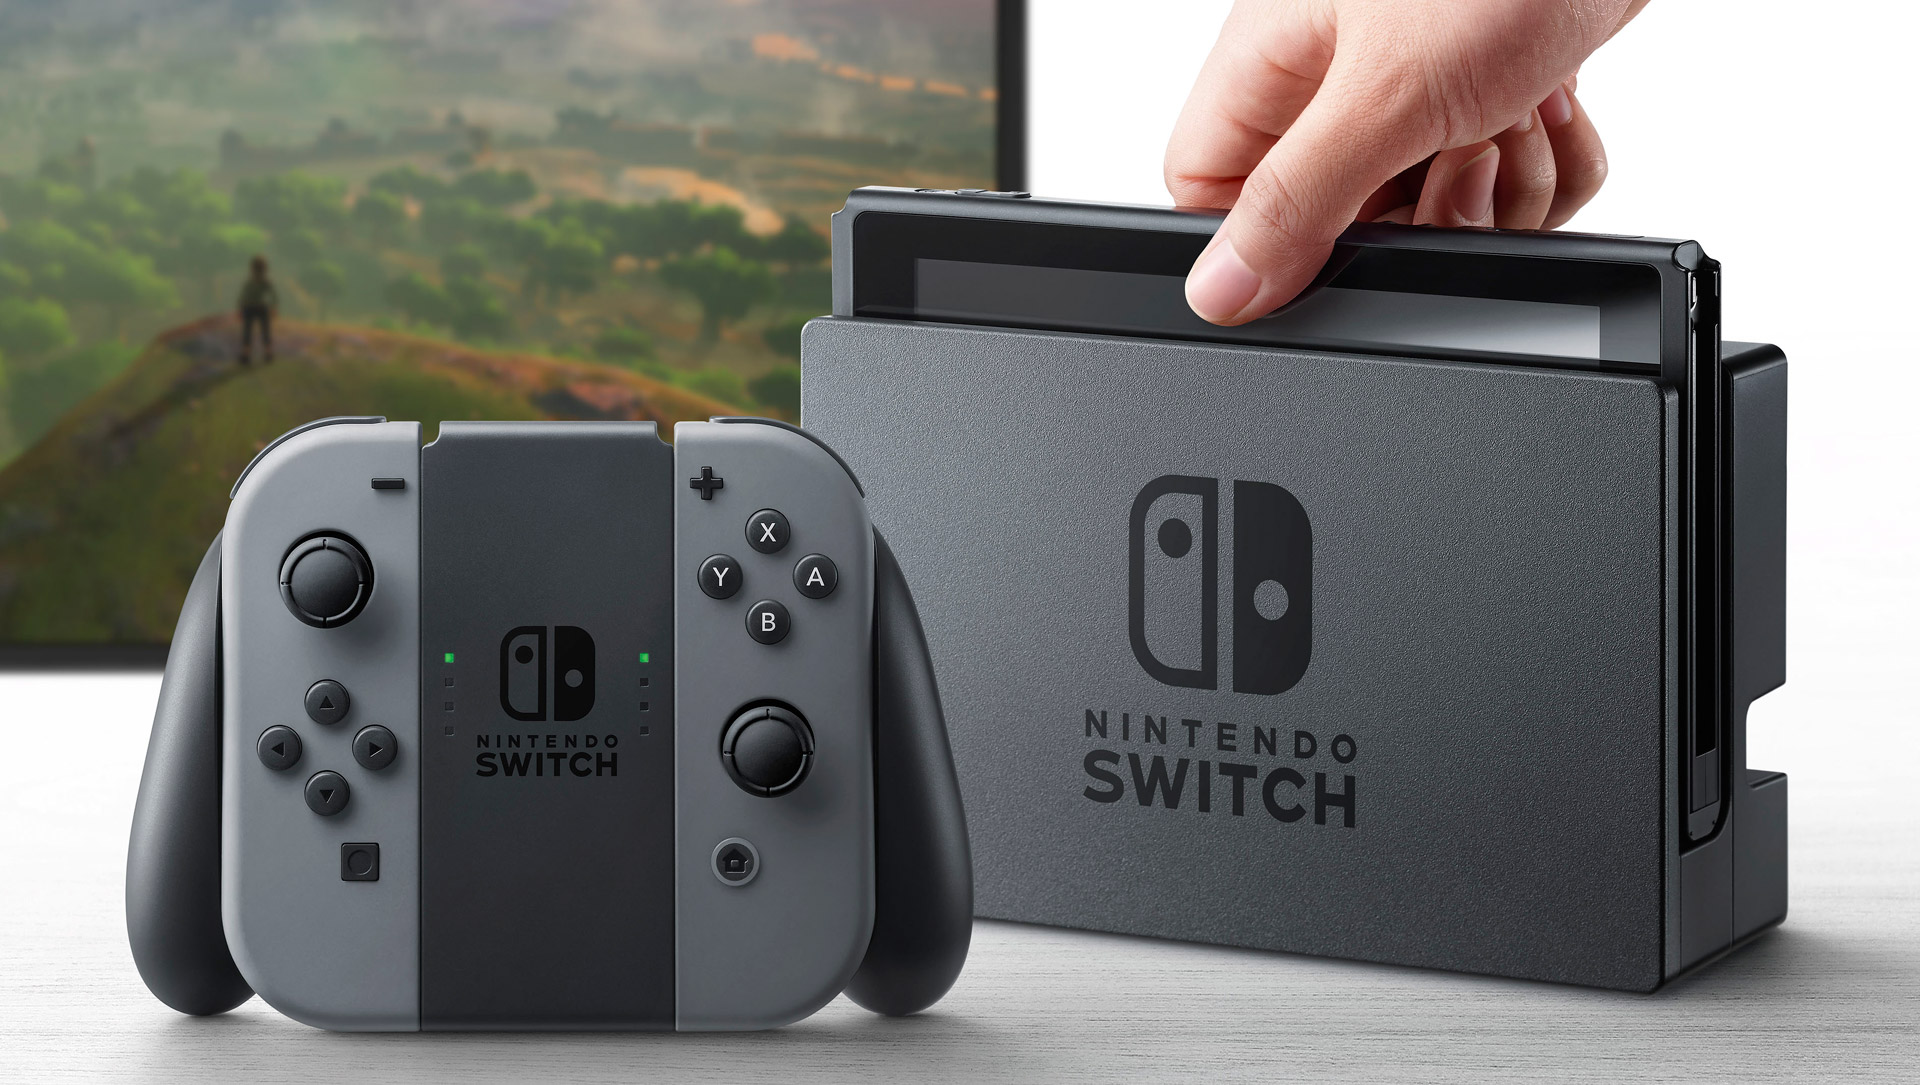 Photo of Nintendo Switch s-a vandut mai bine decat N64 si Gamecube la un loc